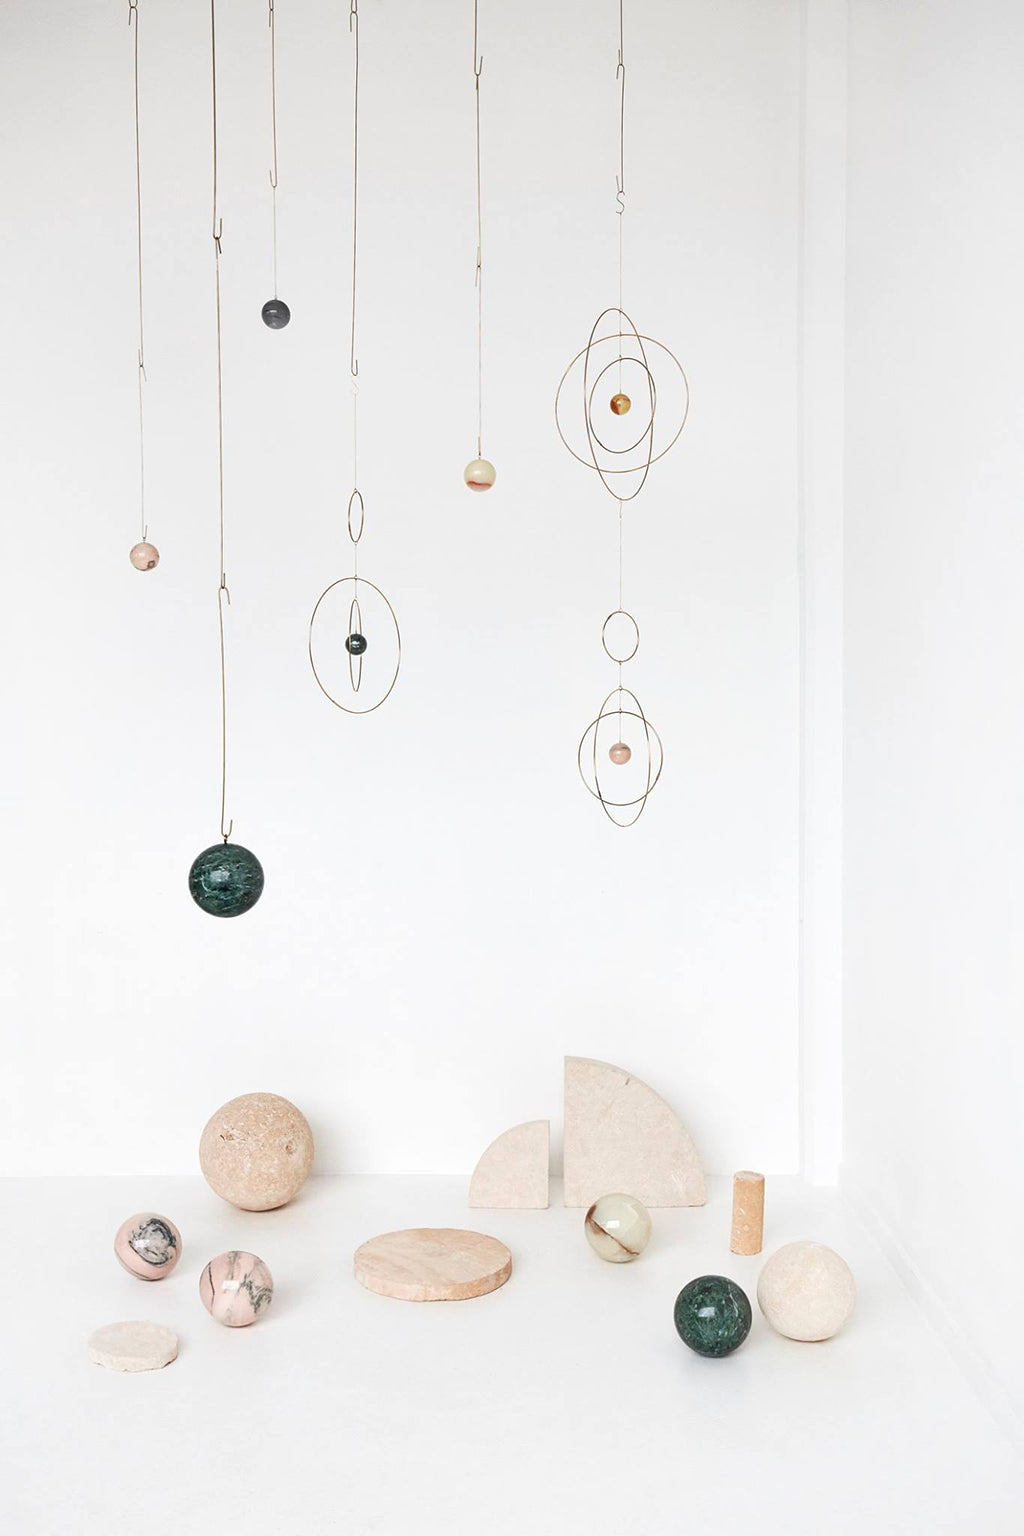 Galaxy Globes designed by Kaja Skytte _ The Fine Store